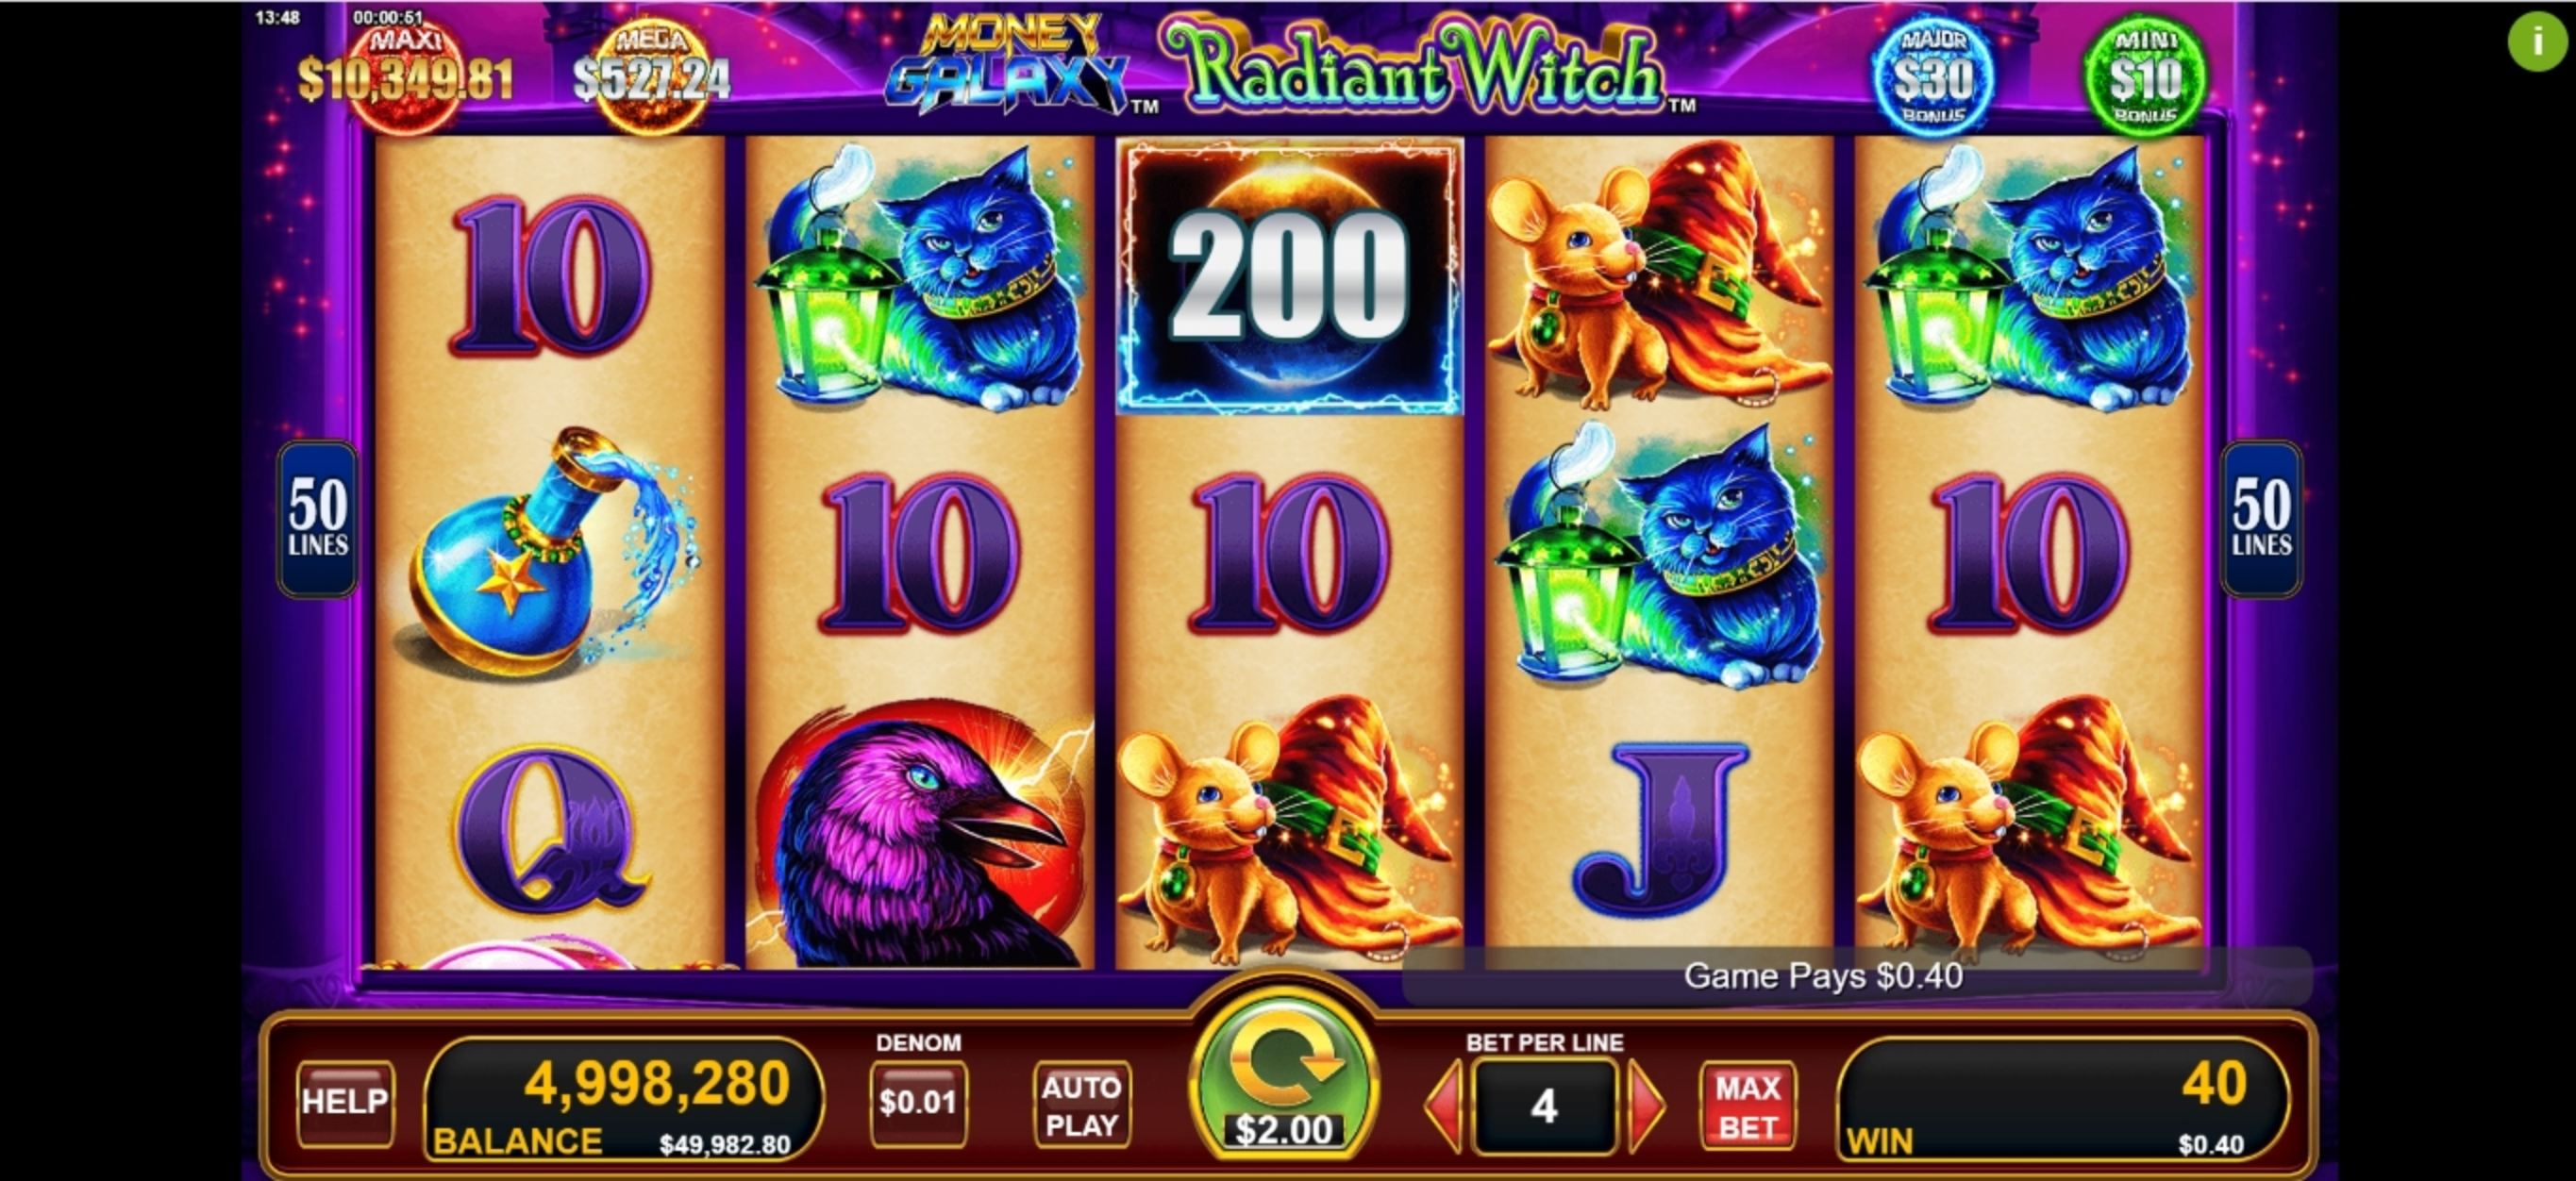 Win Money in Money Galaxy Radiant Witch Free Slot Game by Konami Gaming